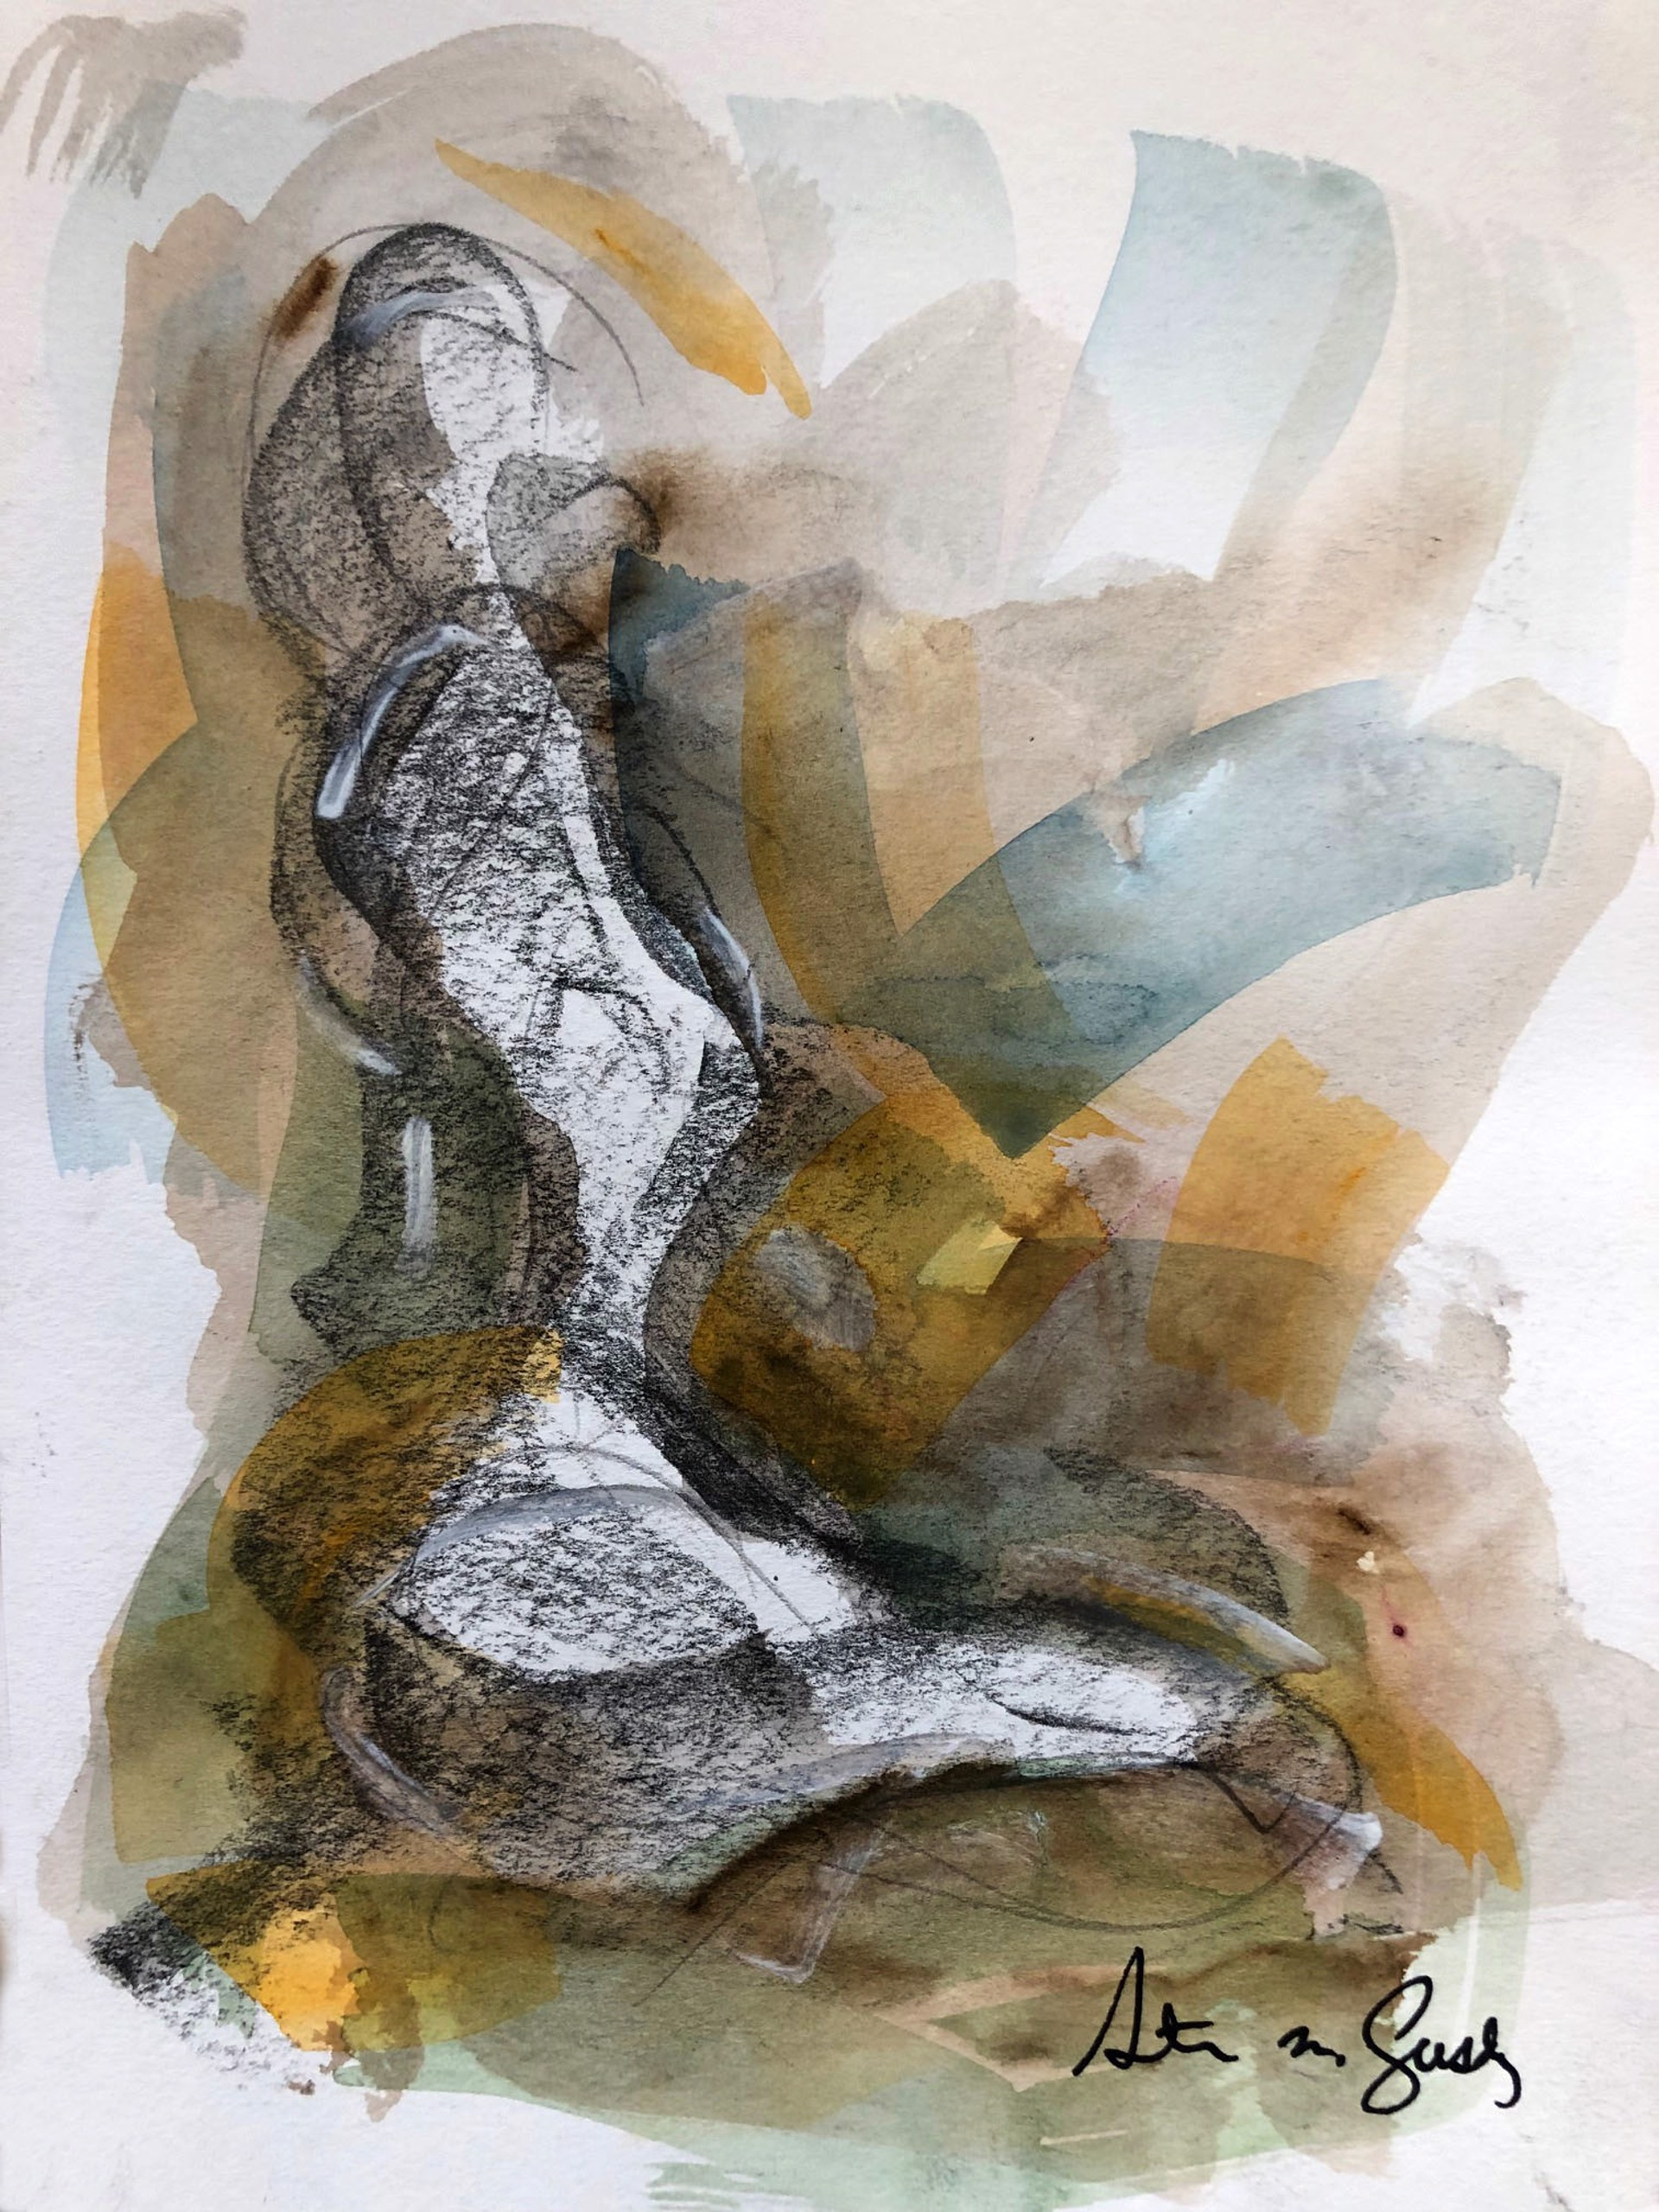 Untitled (Life Drawing) by Steven Lustig